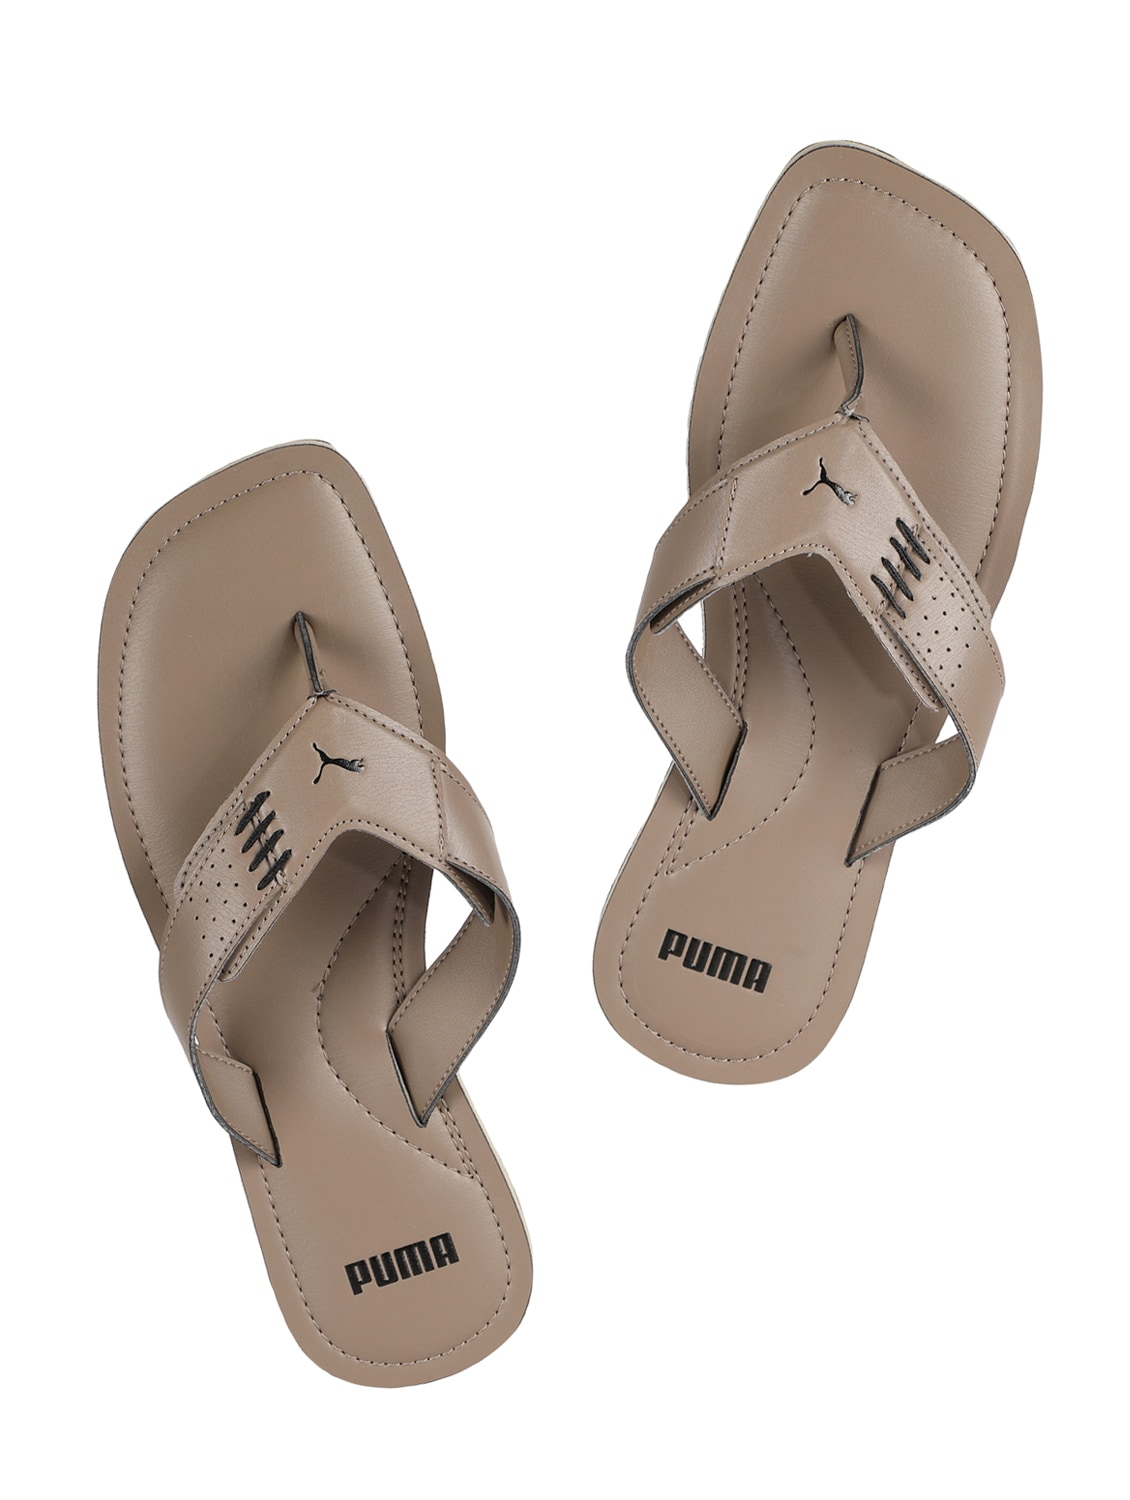 35461d164277 Buy Brown Synthetic   Mesh Toe Separator Flip Flops for Men from Puma for  ₹1613 at 5% off